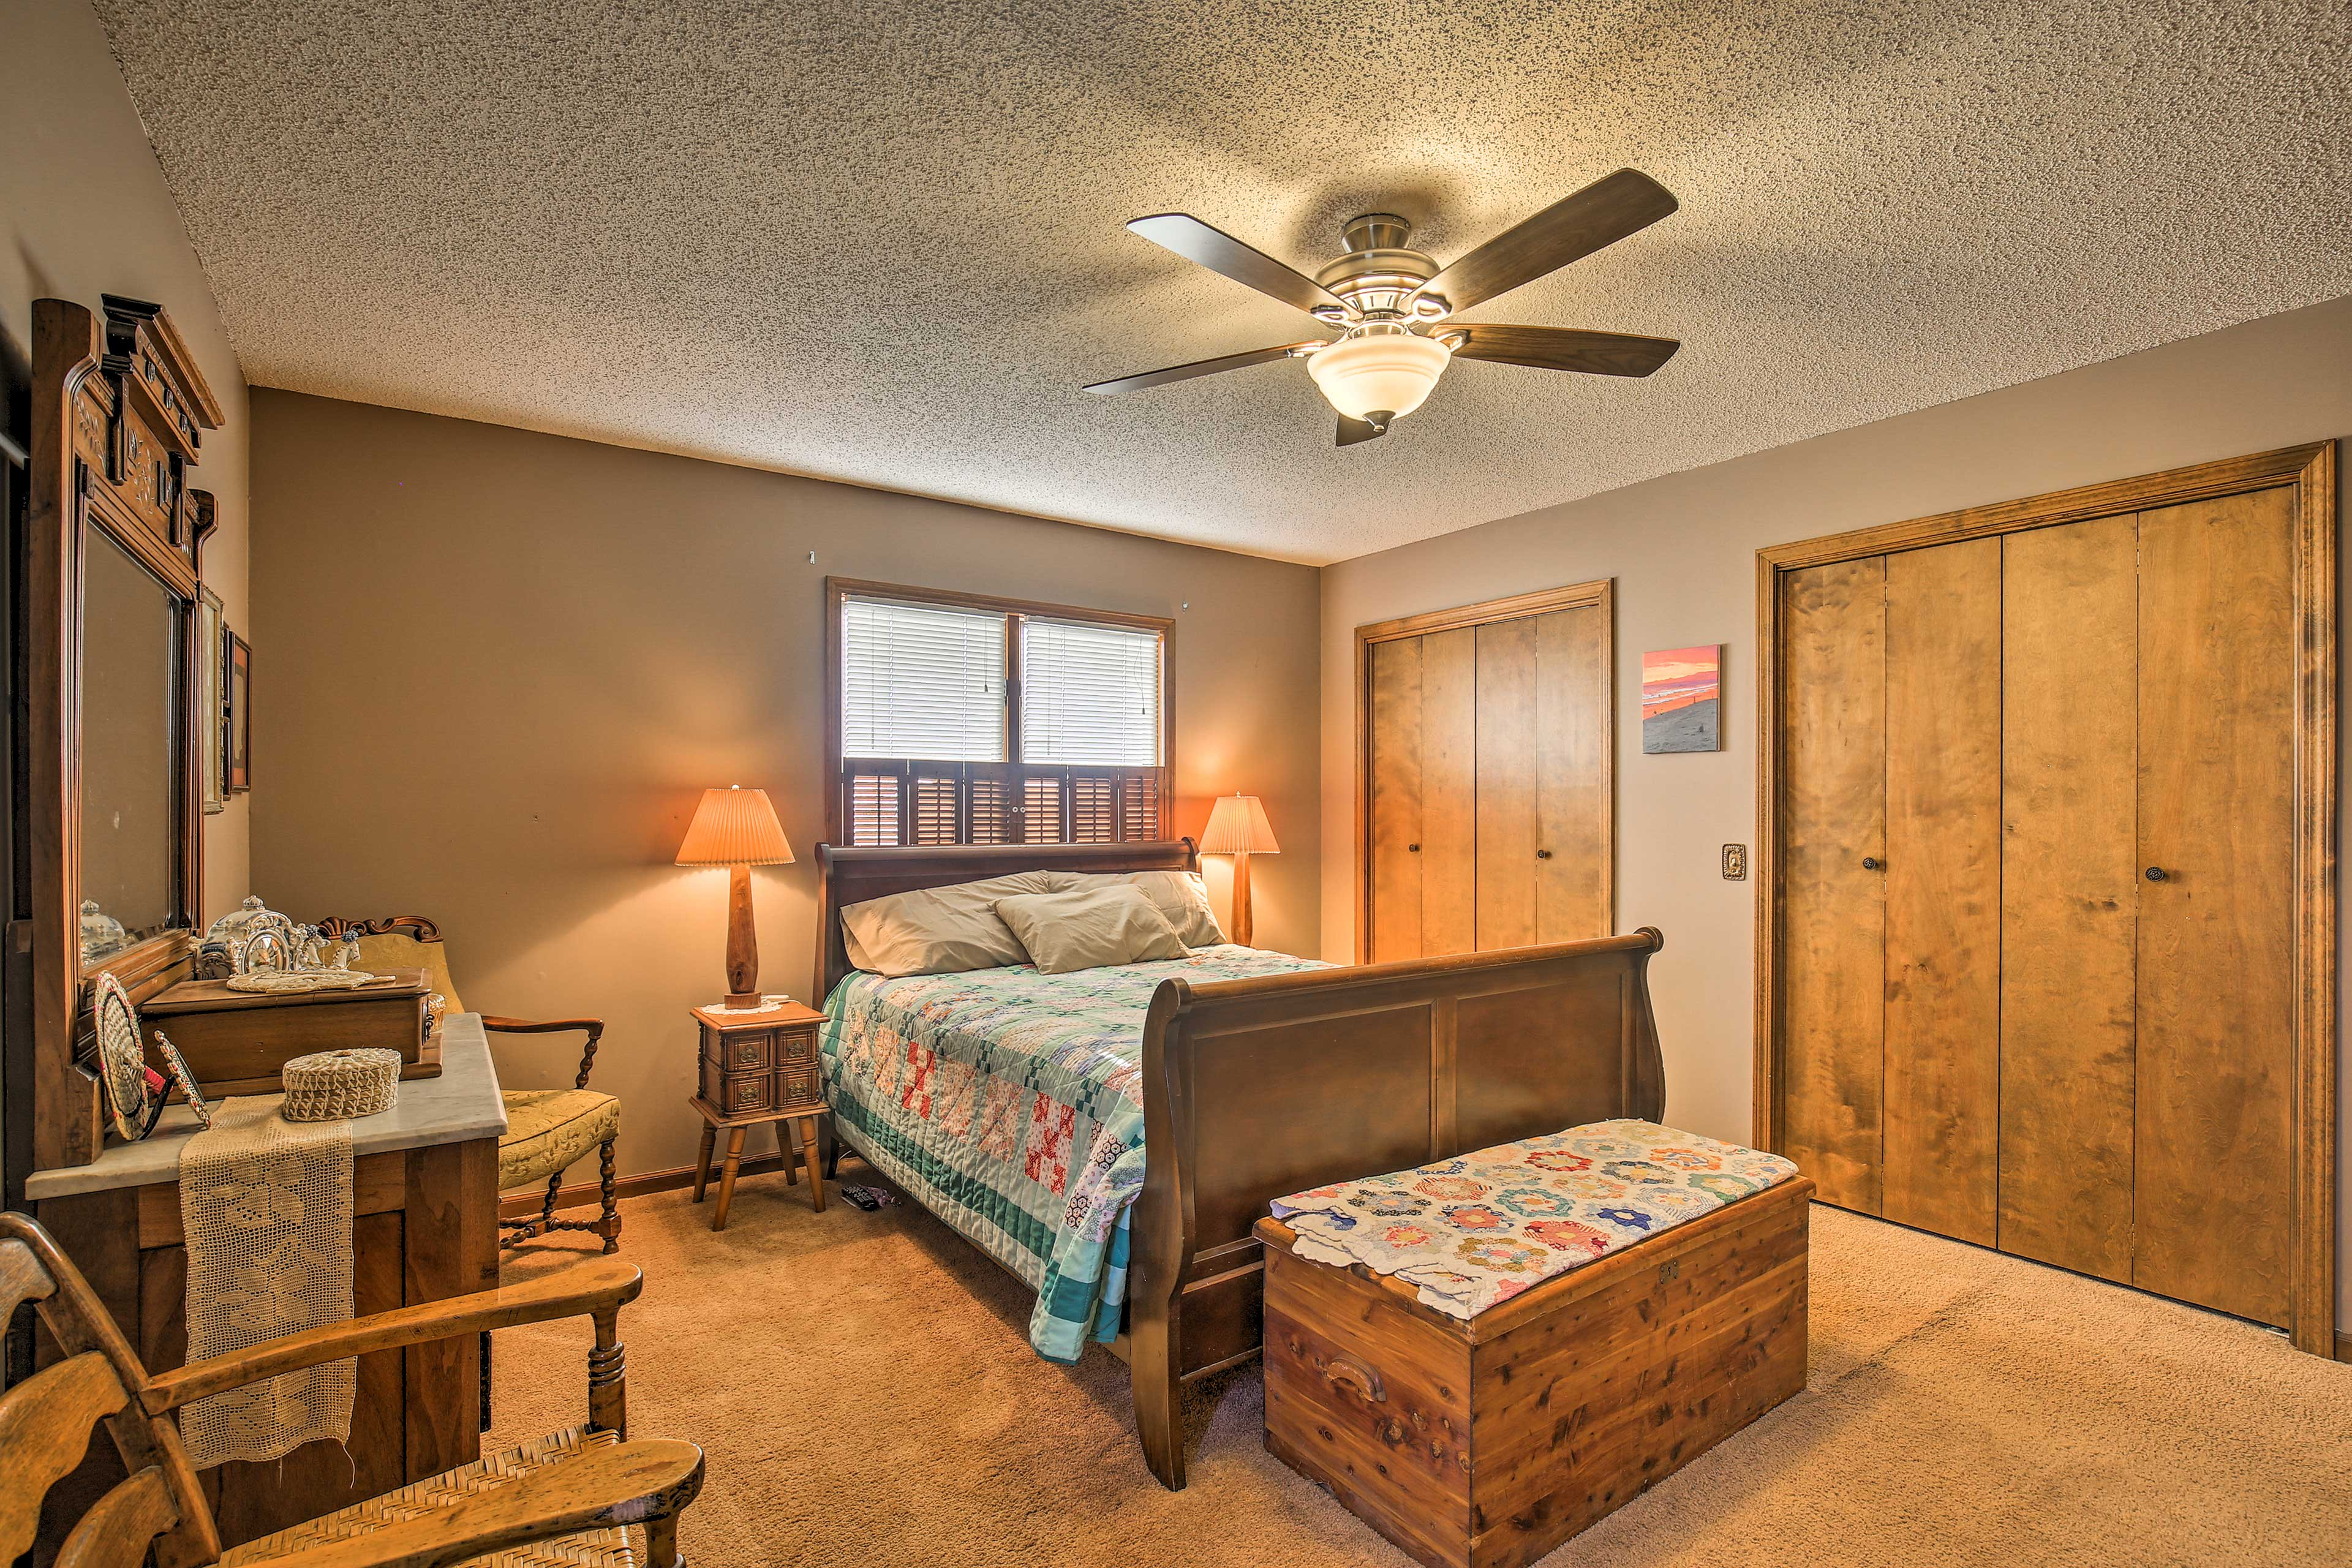 A queen bed and 2 closets in the master bedroom let you stay in comfort.